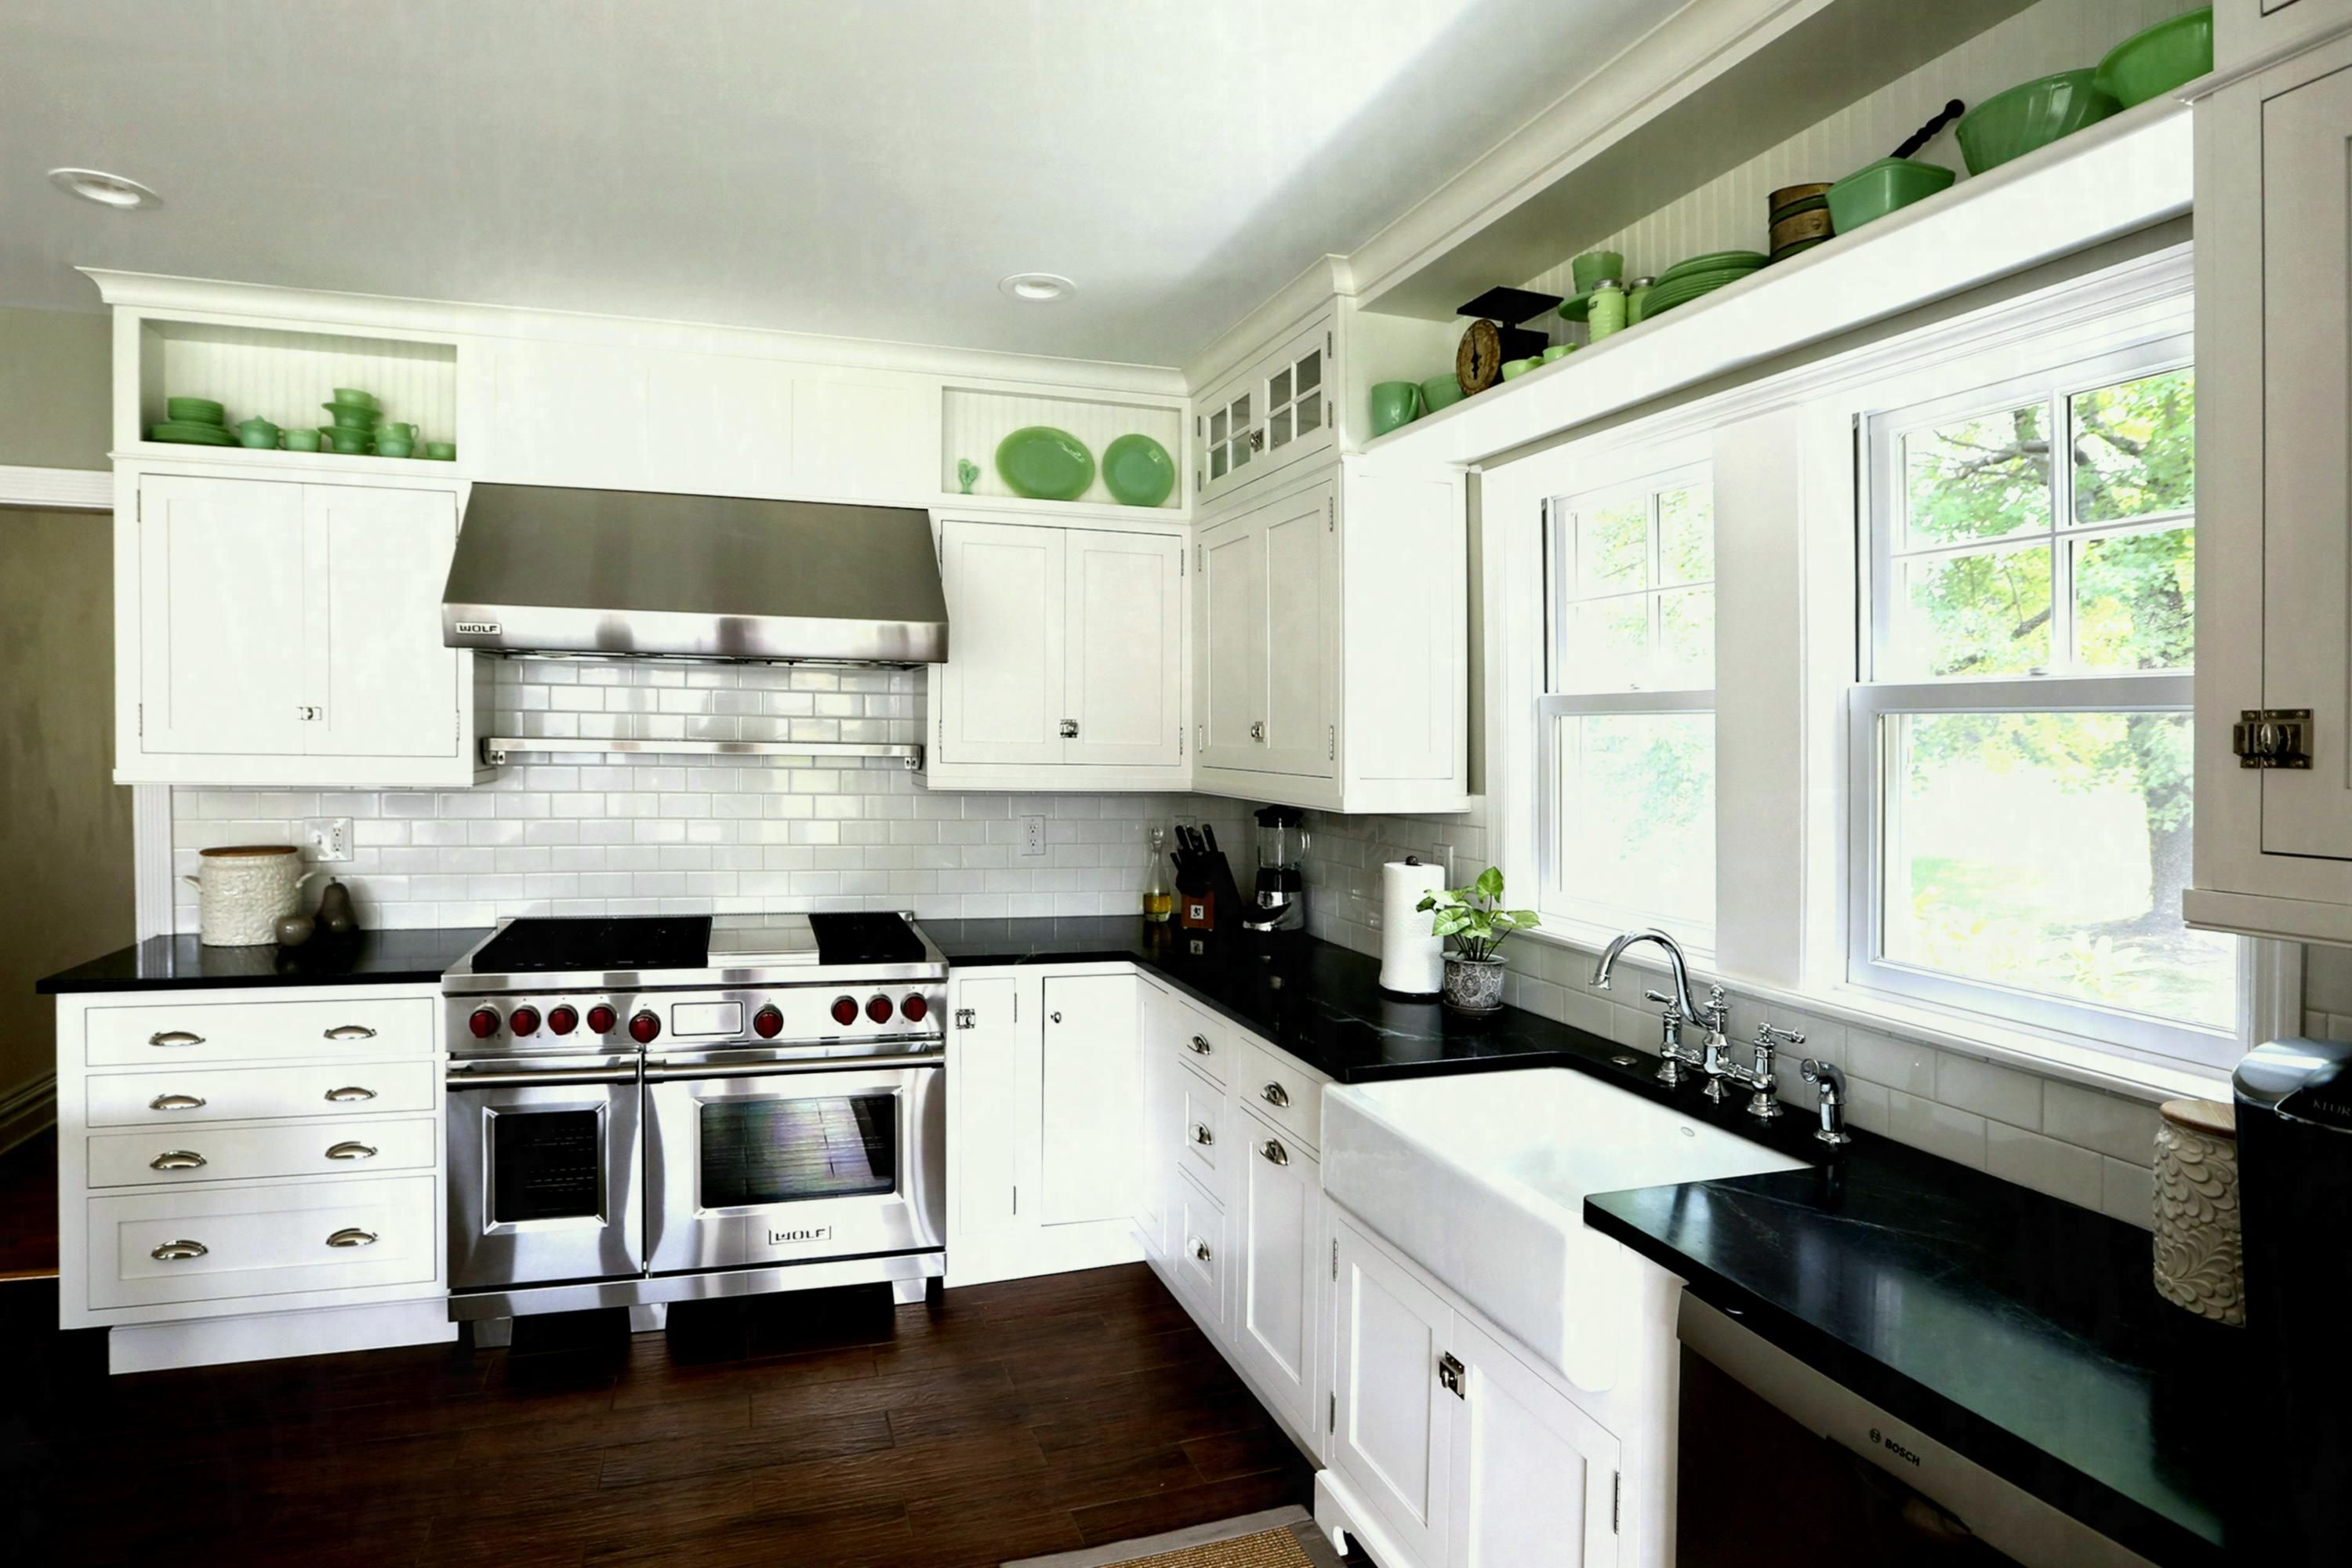 Inspiring Ideas For White Kitchen Cabinets Design And Black Countertop